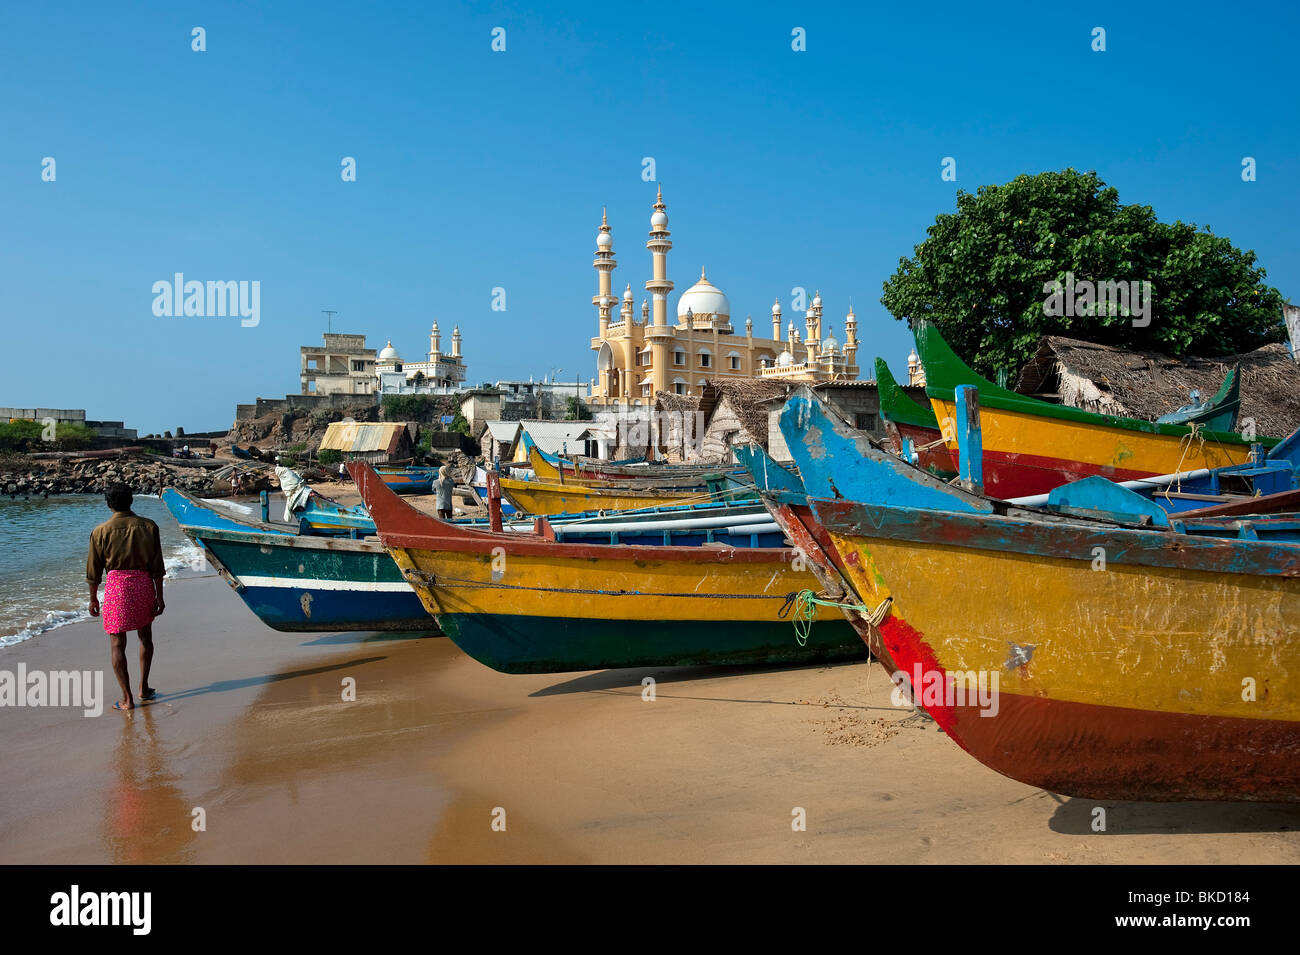 Mosque and Fishing Boats on Vizhinjam Fishing Harbour Beach, Kerala, India - Stock Image